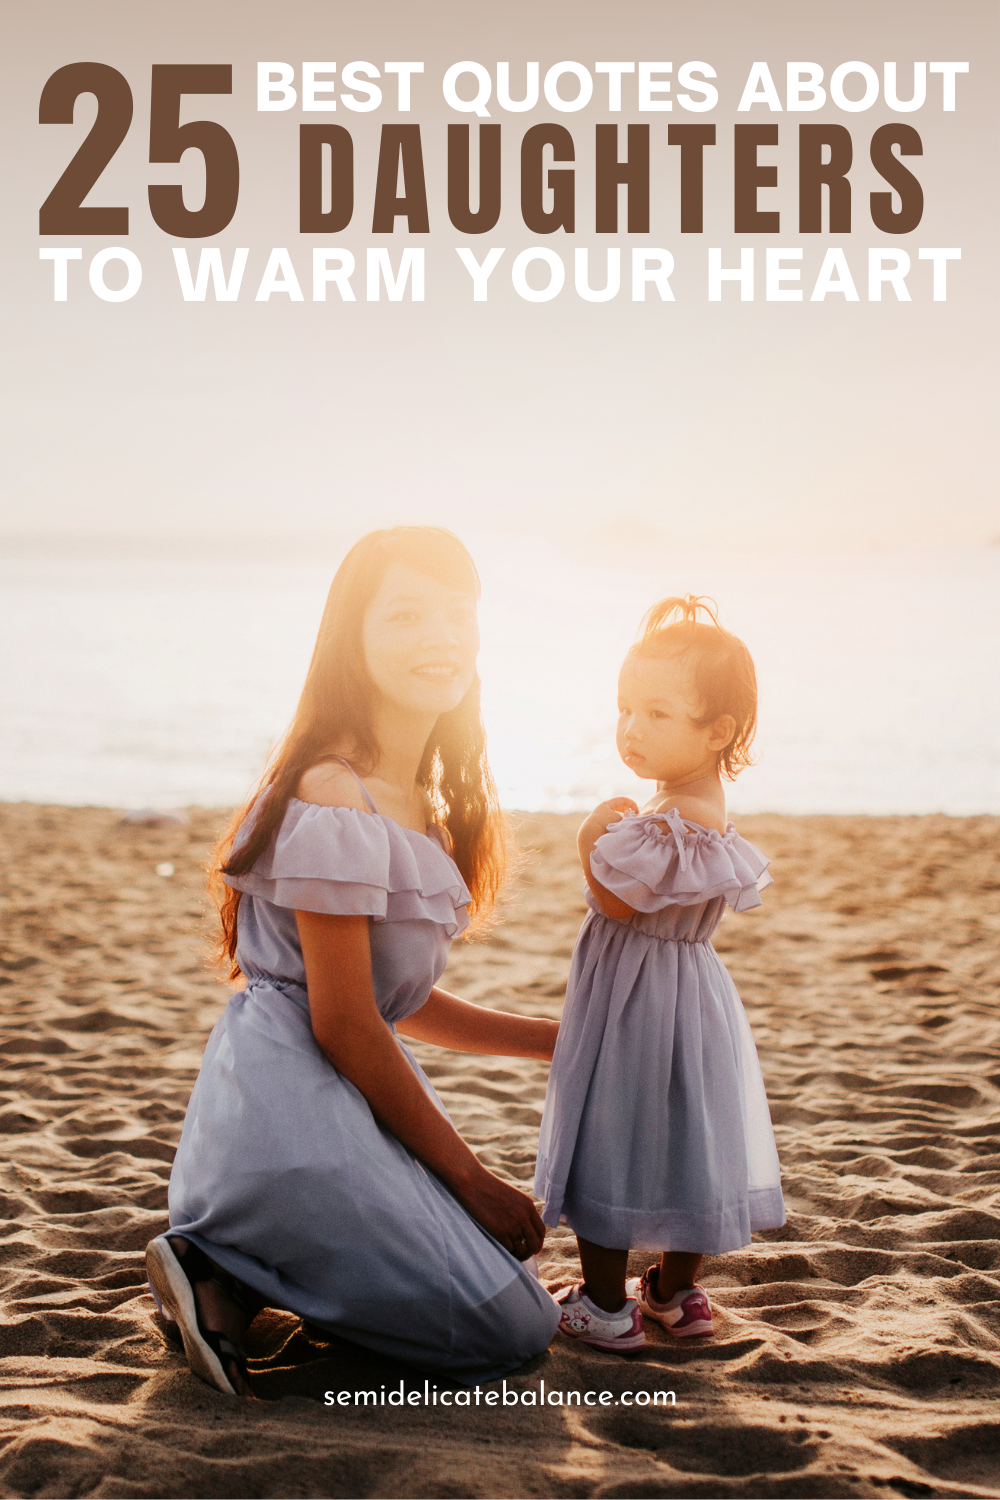 Best Quotes About Daughters To Warm Your Heart, Daughter sayings and quotes